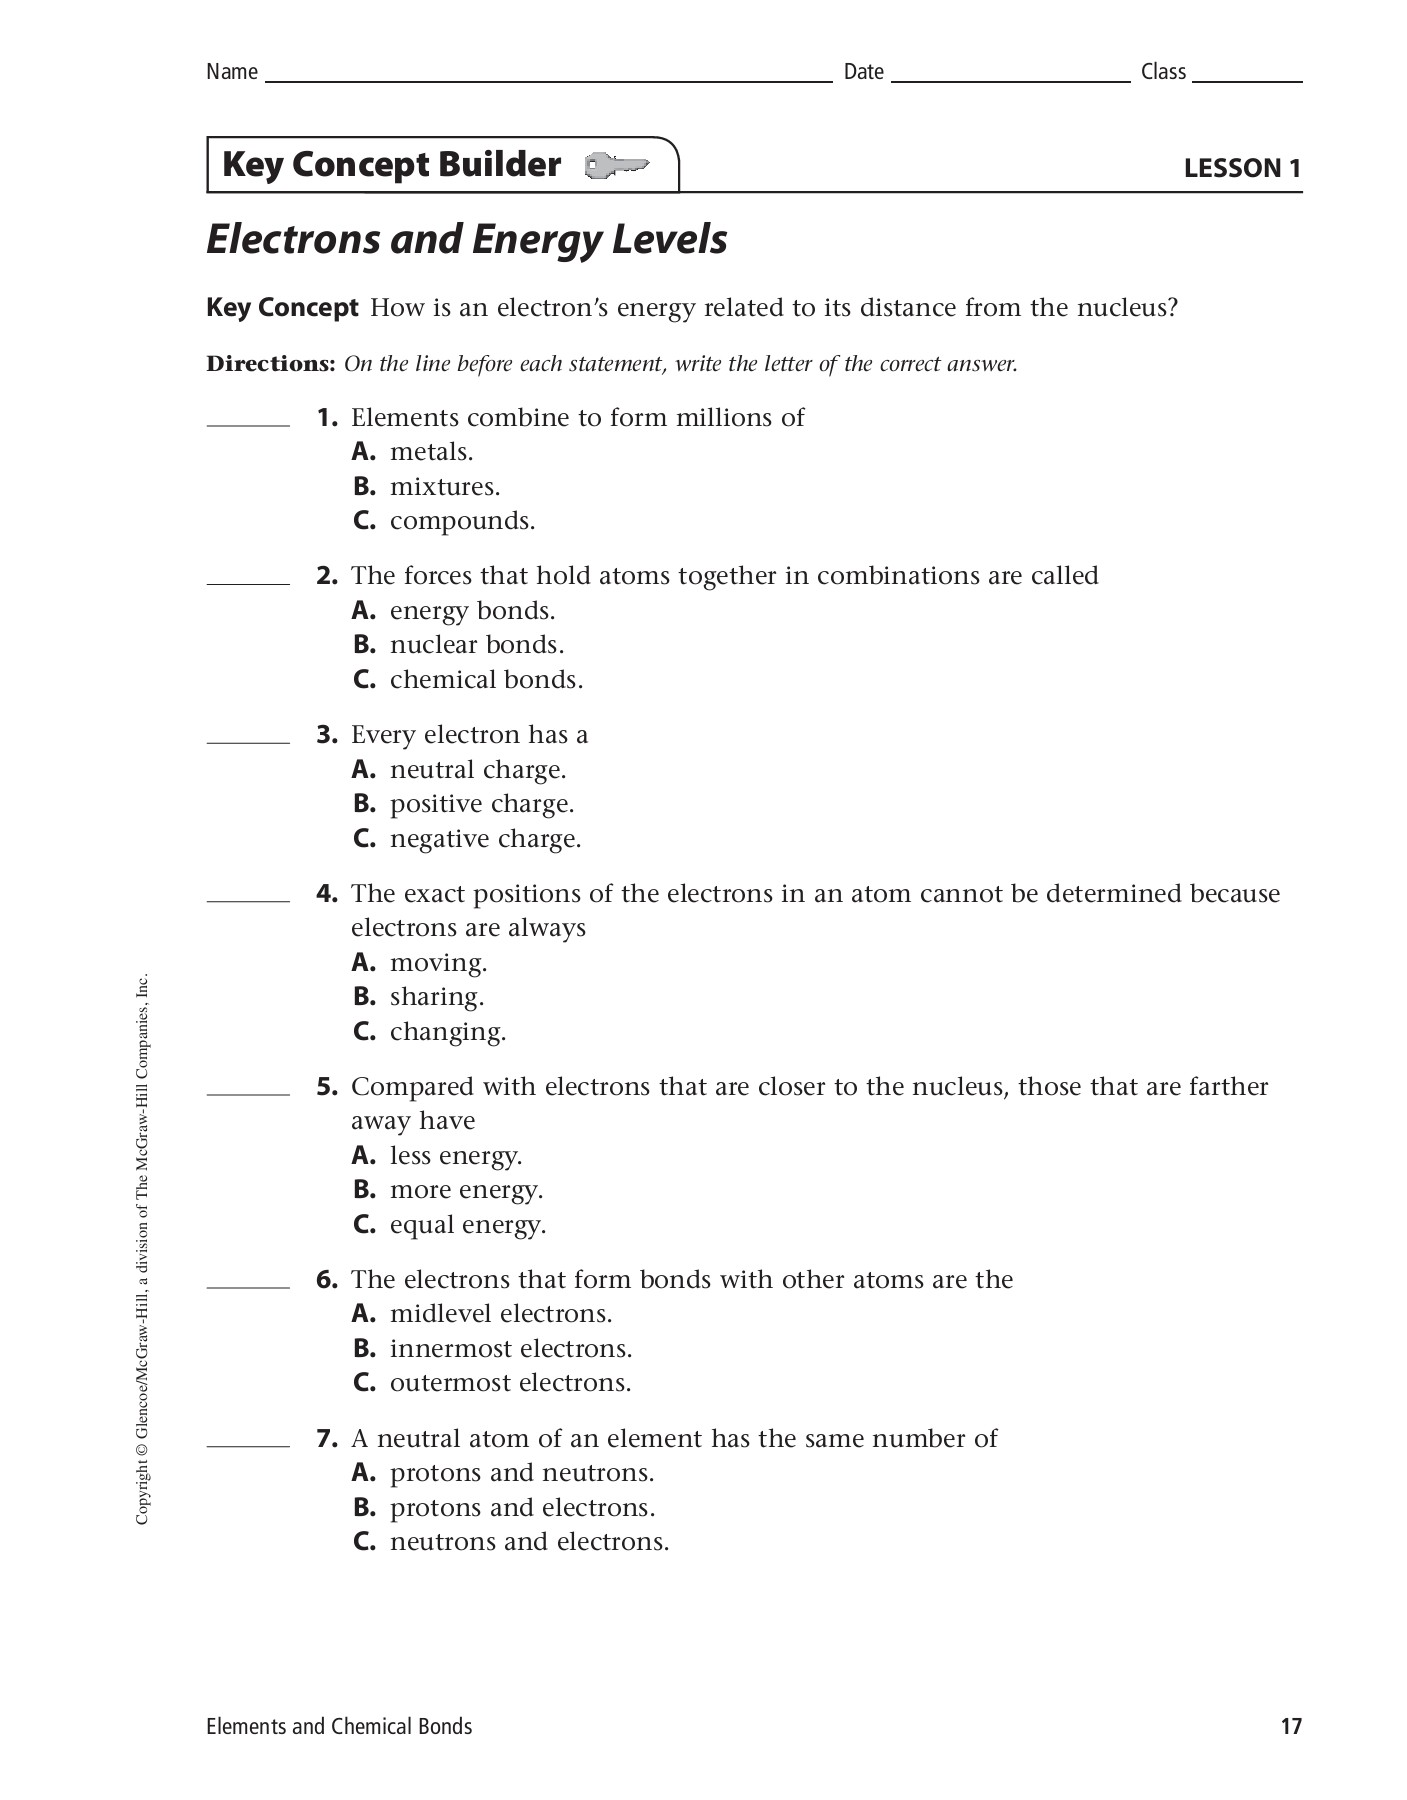 Electrons and Energy Levels - Wikispaces Pages 1 - 4 - Text ...